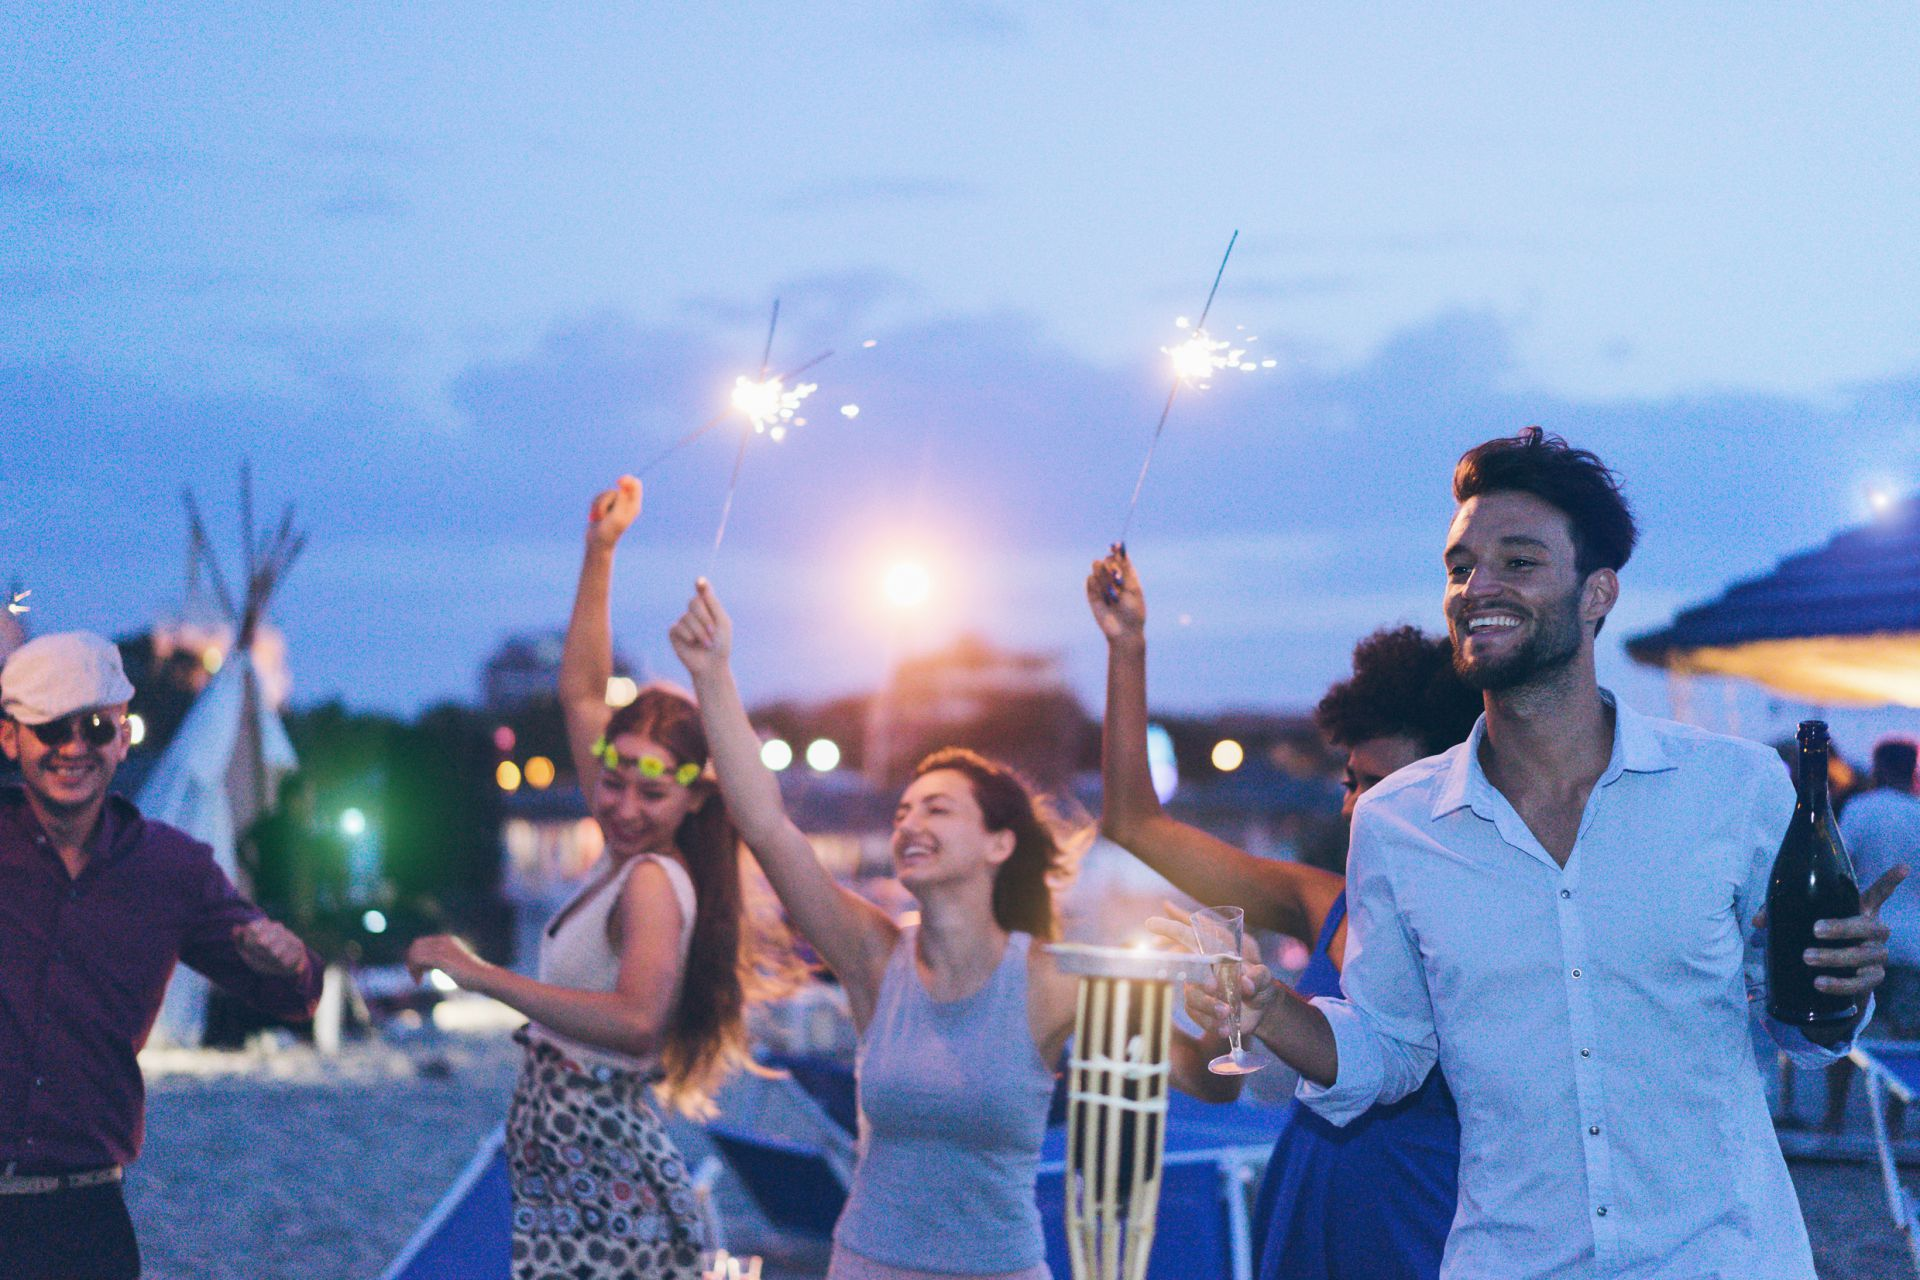 group of young adults drinking on beach holding sparklers